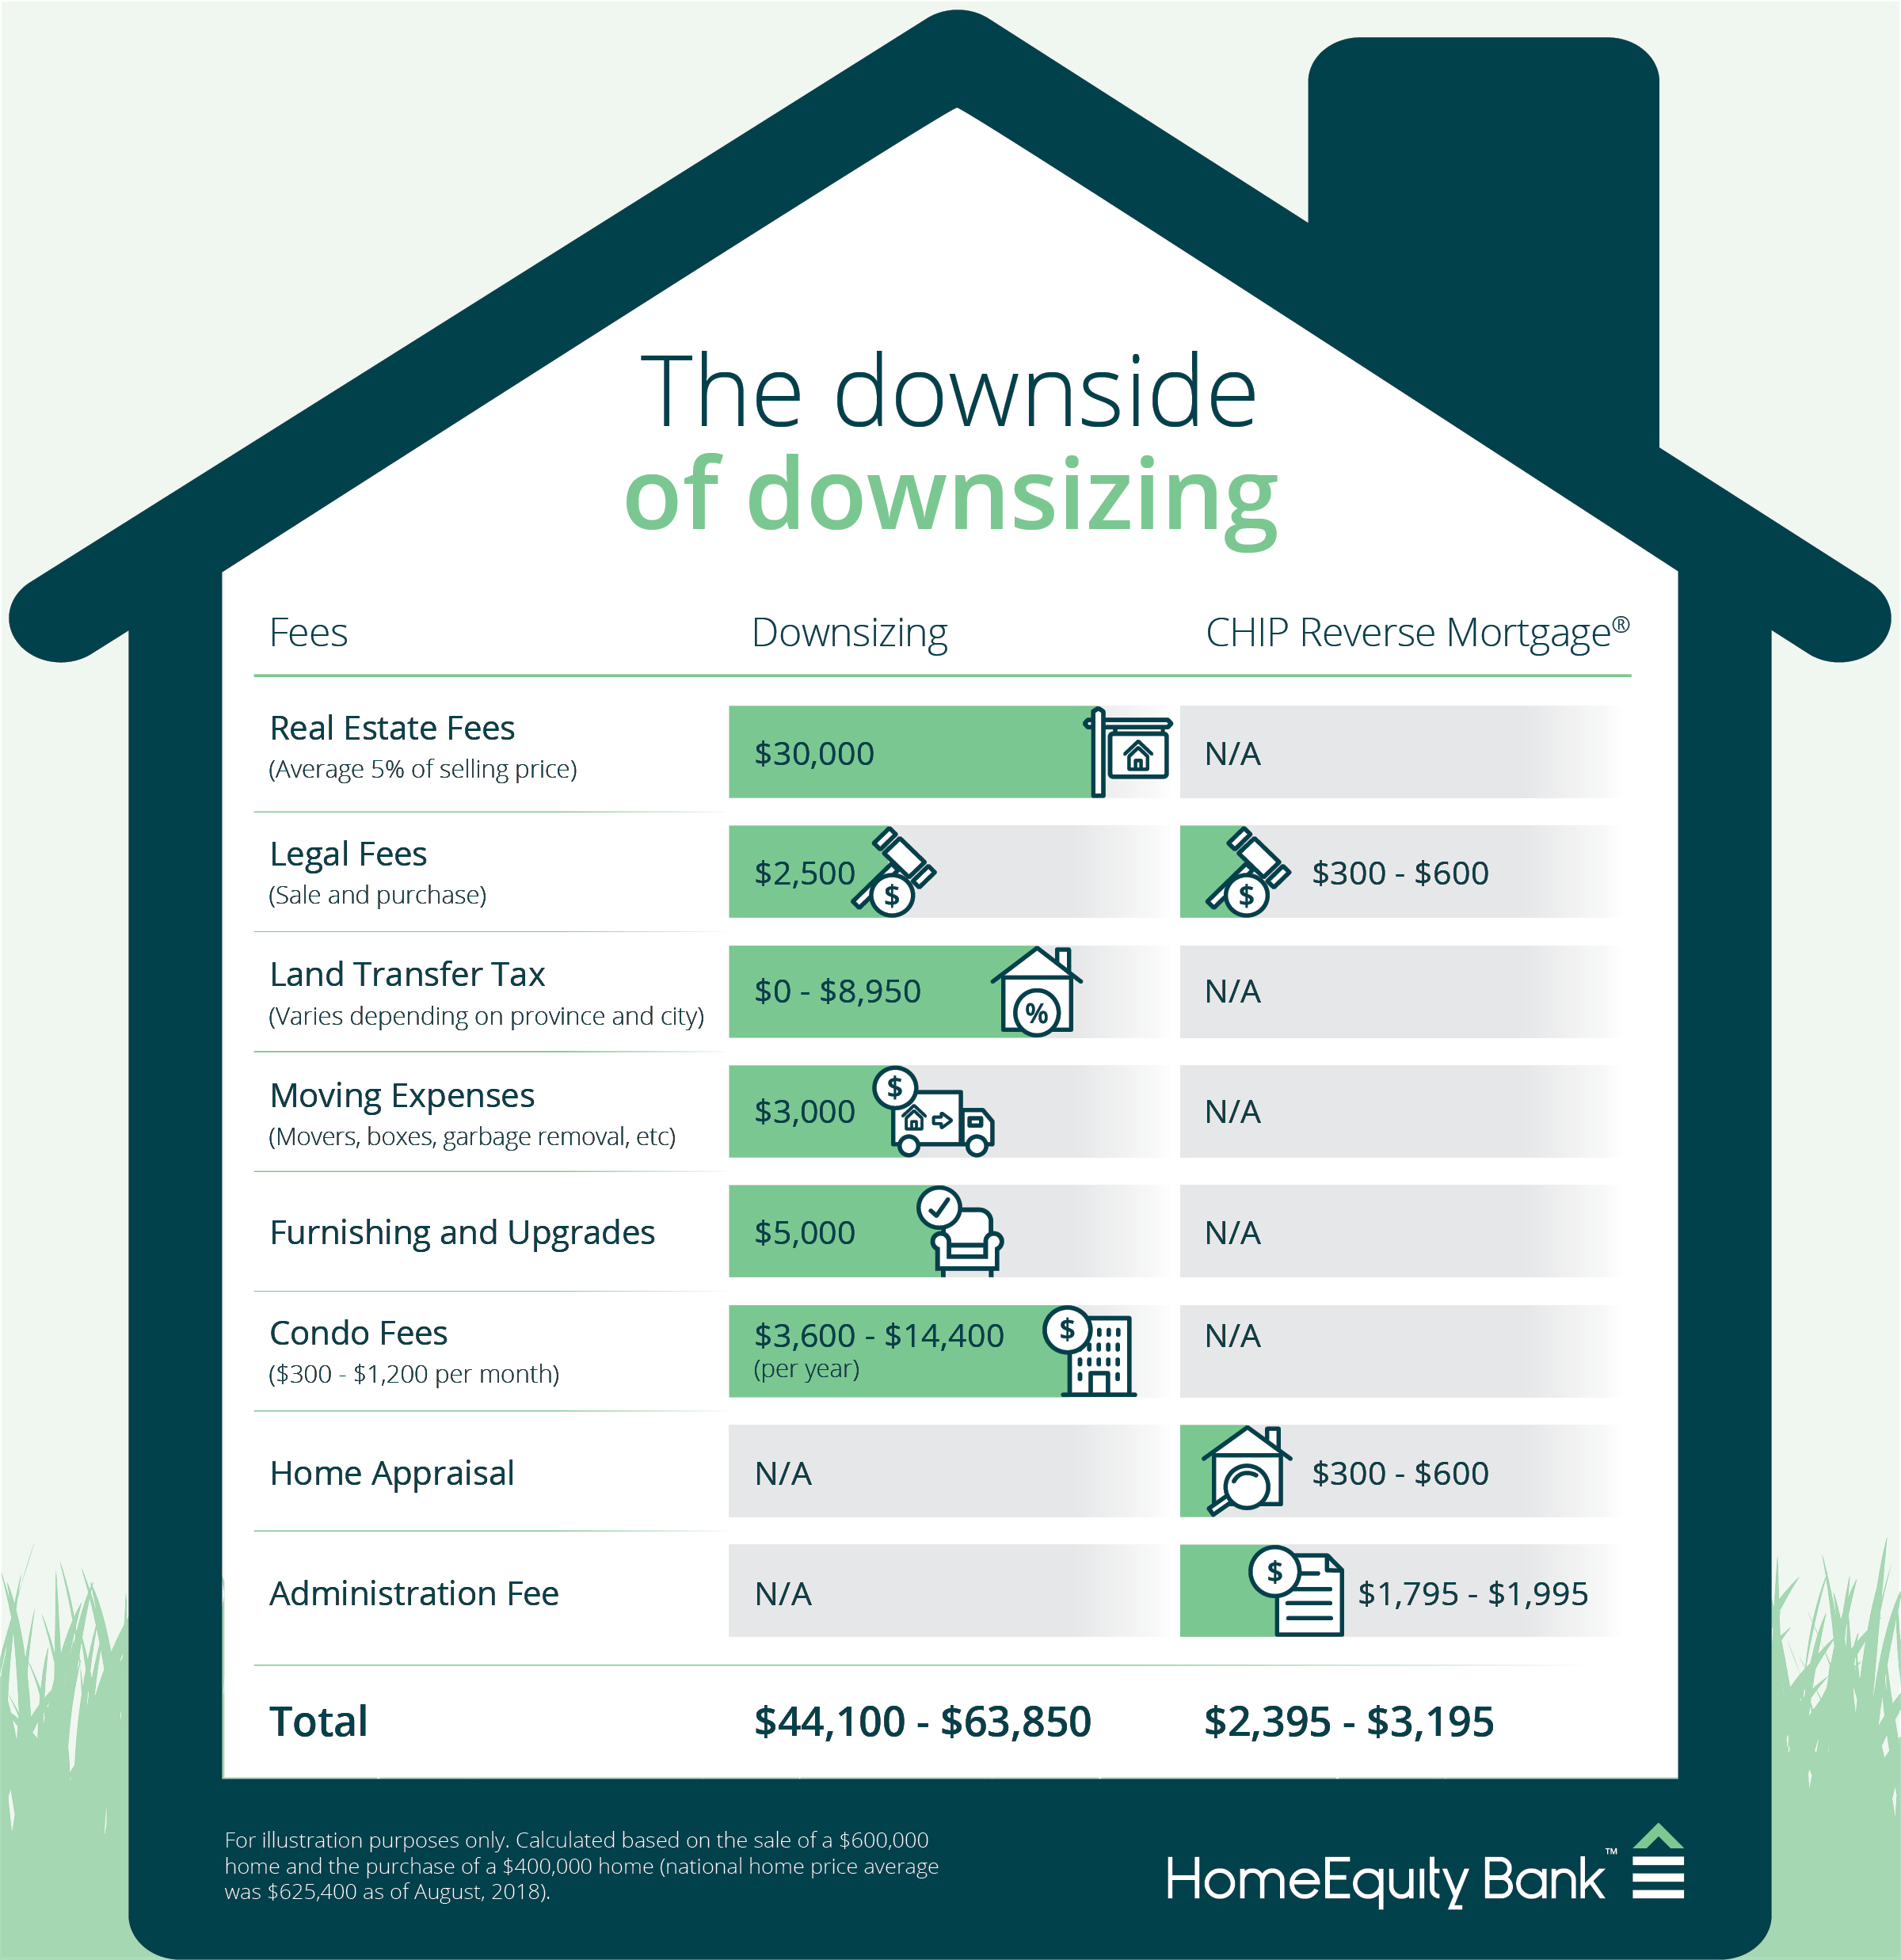 Downsizing is not the financial solution to retirement that many believe it to be.